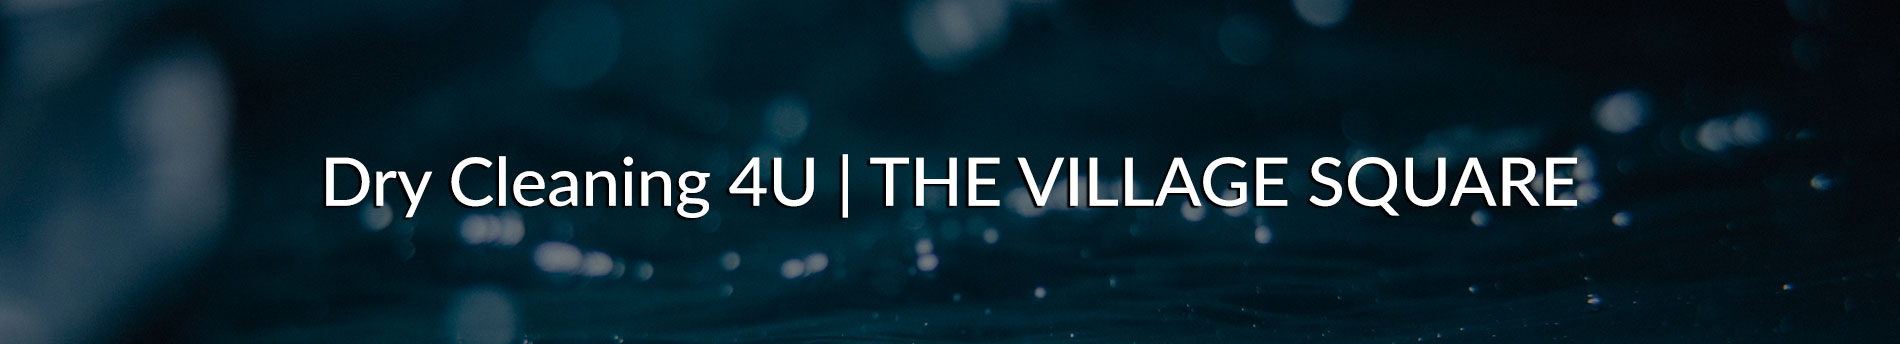 Dry Cleaning 4U - The Village Square Durbanville